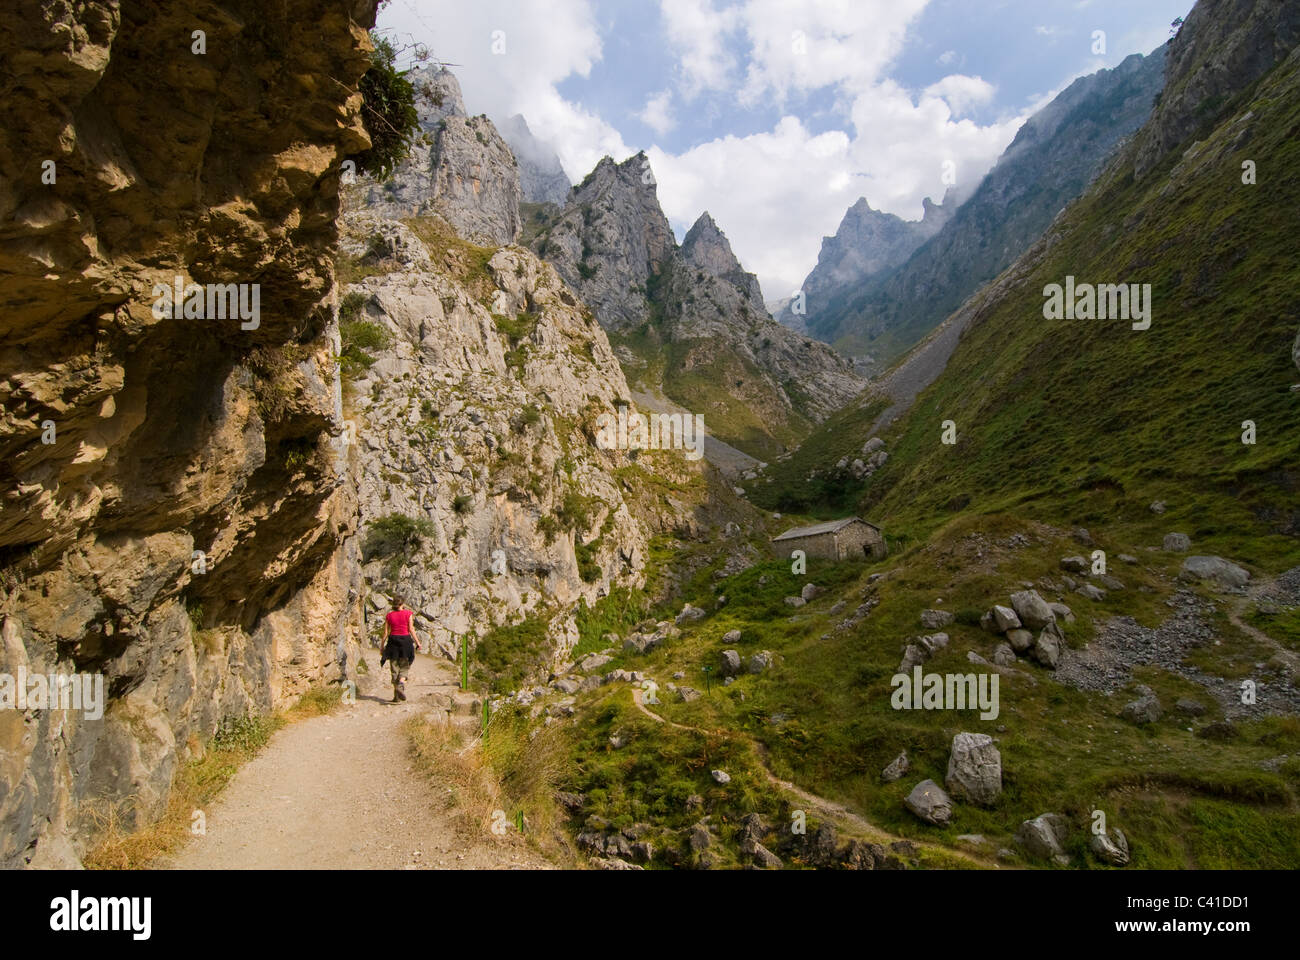 Walker on the dramatic footpath in the Garganta del Cares, Near Cain. Picos de Europa, Asturias. - Stock Image